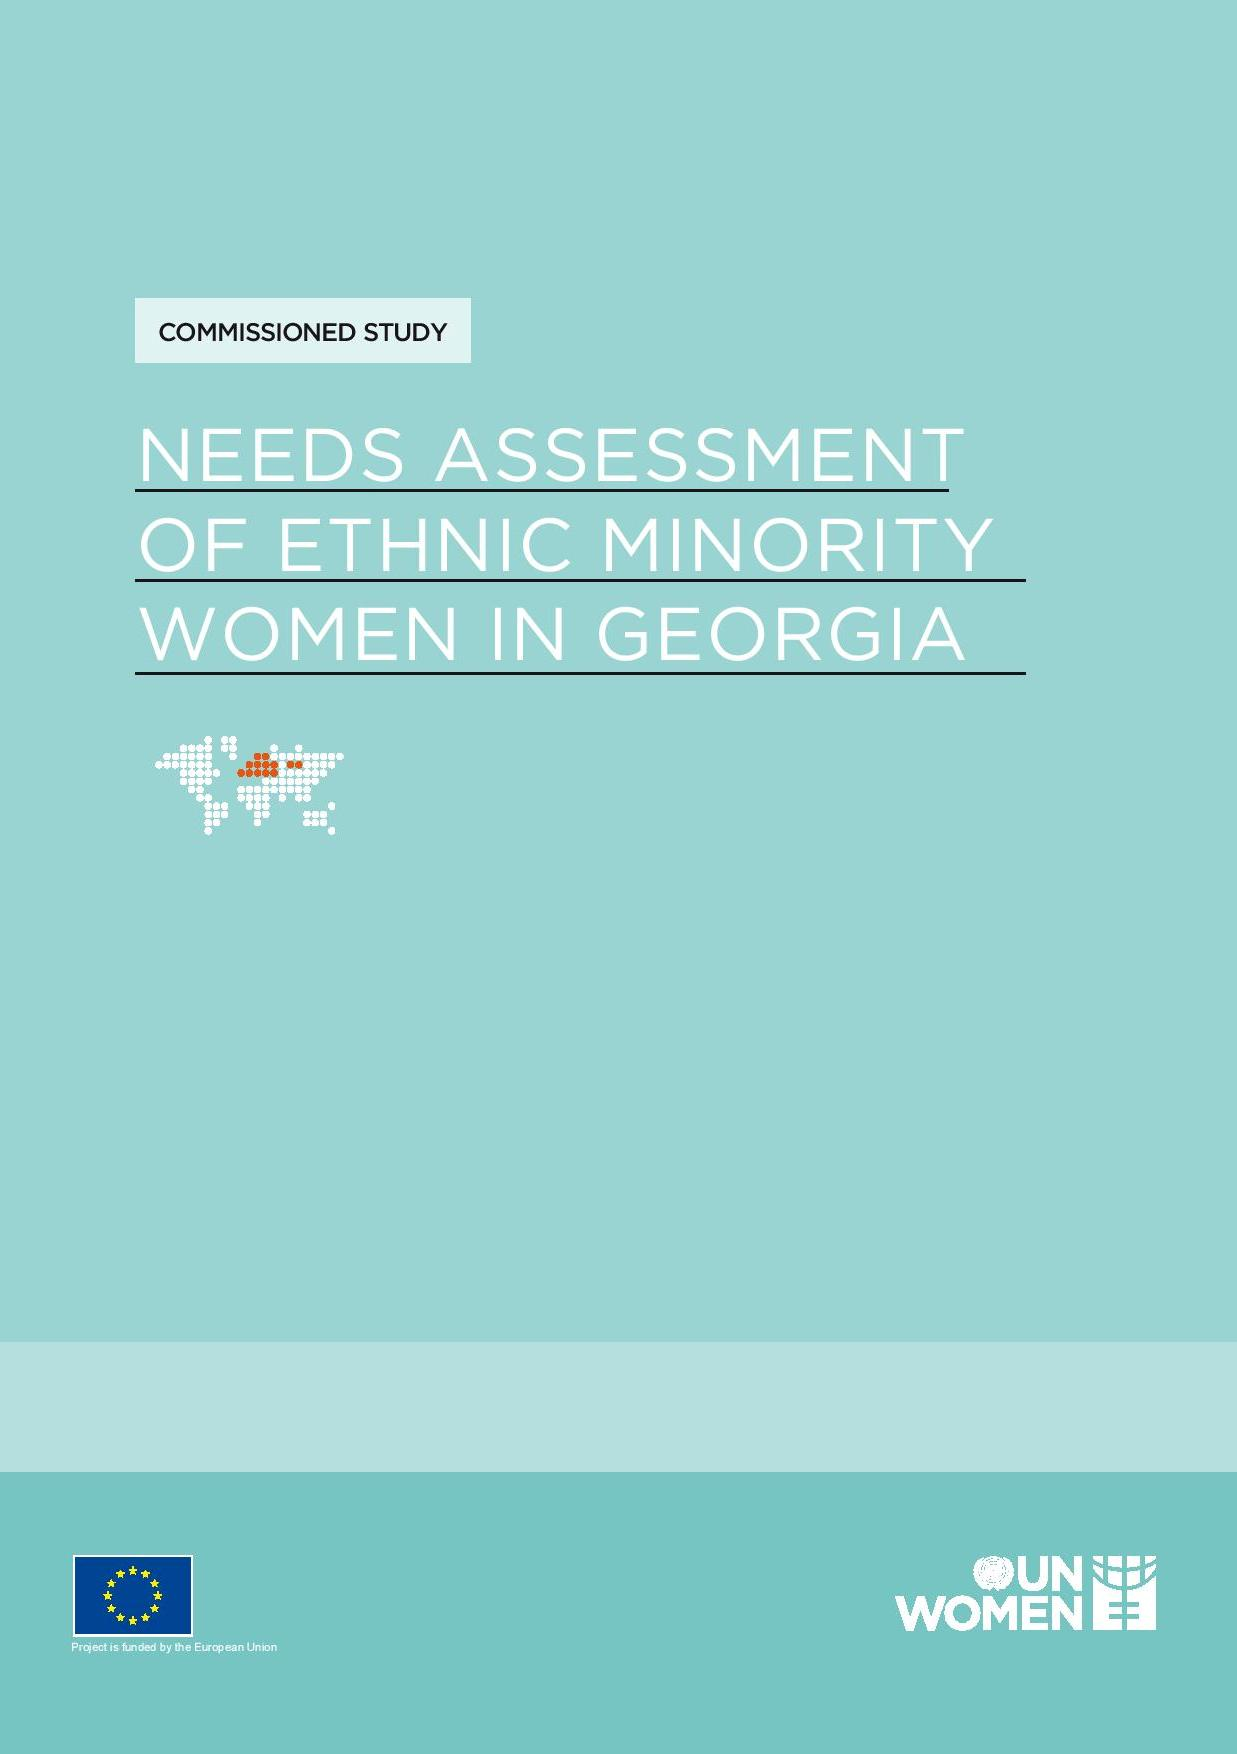 Needs Assessment of Ethnic Minority Women in Georgia